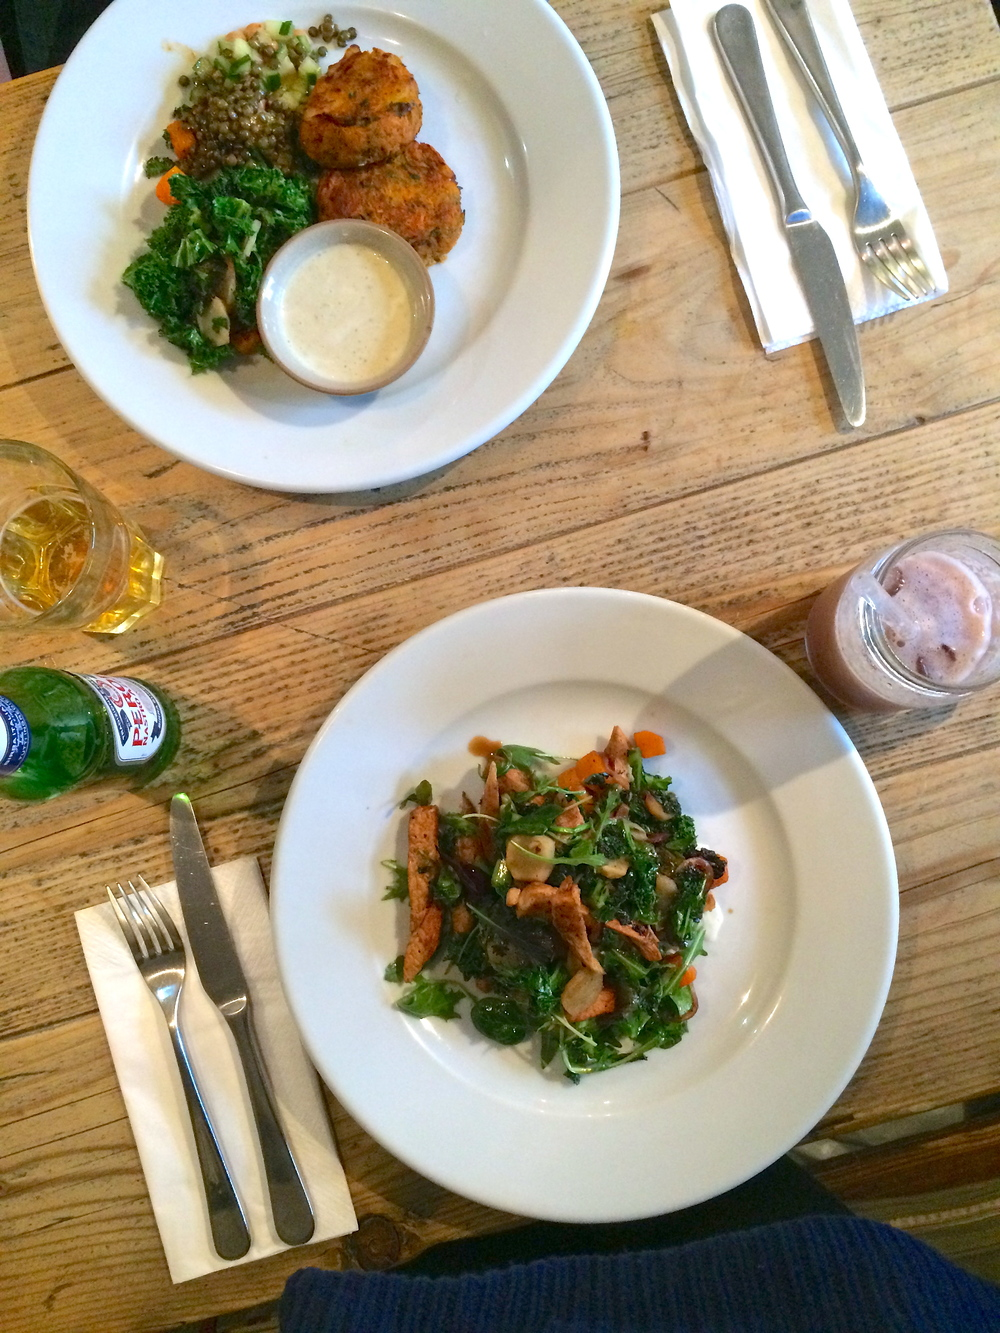 Indian spiced chicken salad with kale, broccoli and roasted onion at Filmore & Union